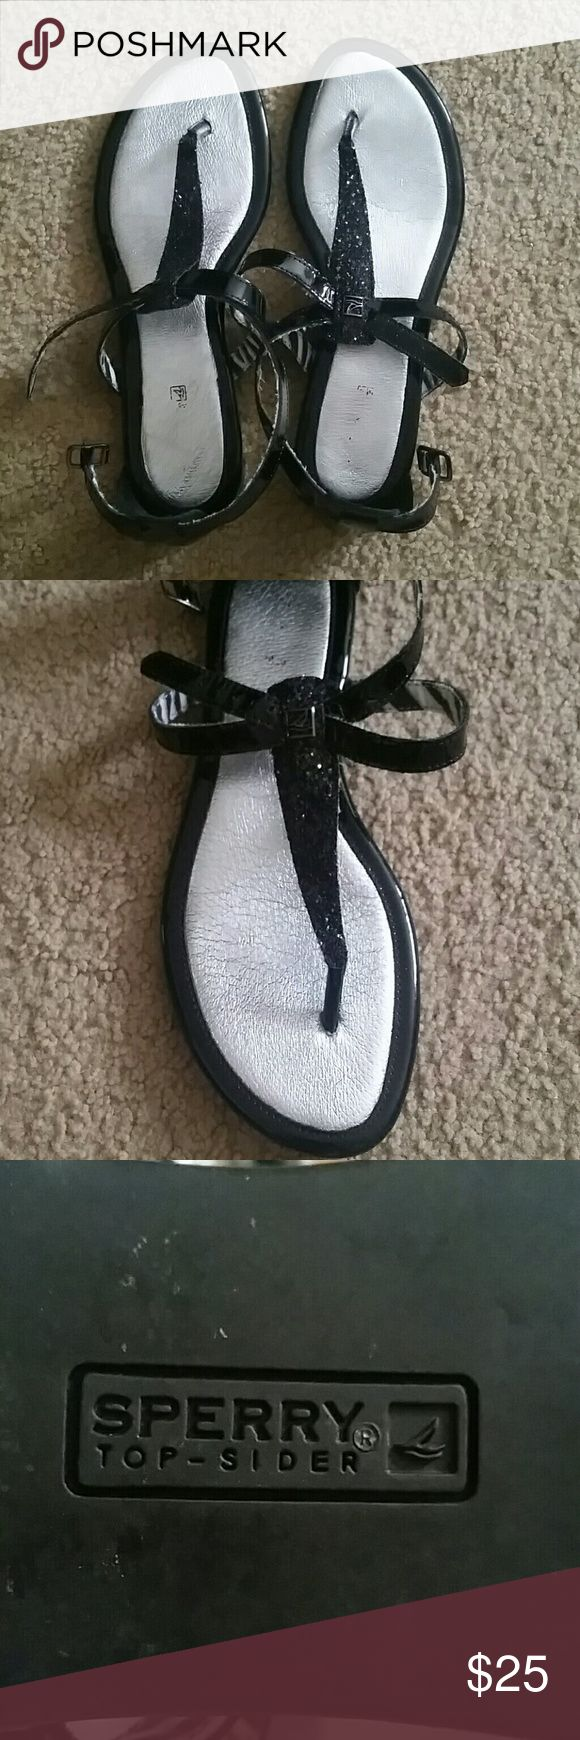 Sperry Sandals Black sparkley Sperry sandal worn once Sperry Top-Sider Shoes Sandals